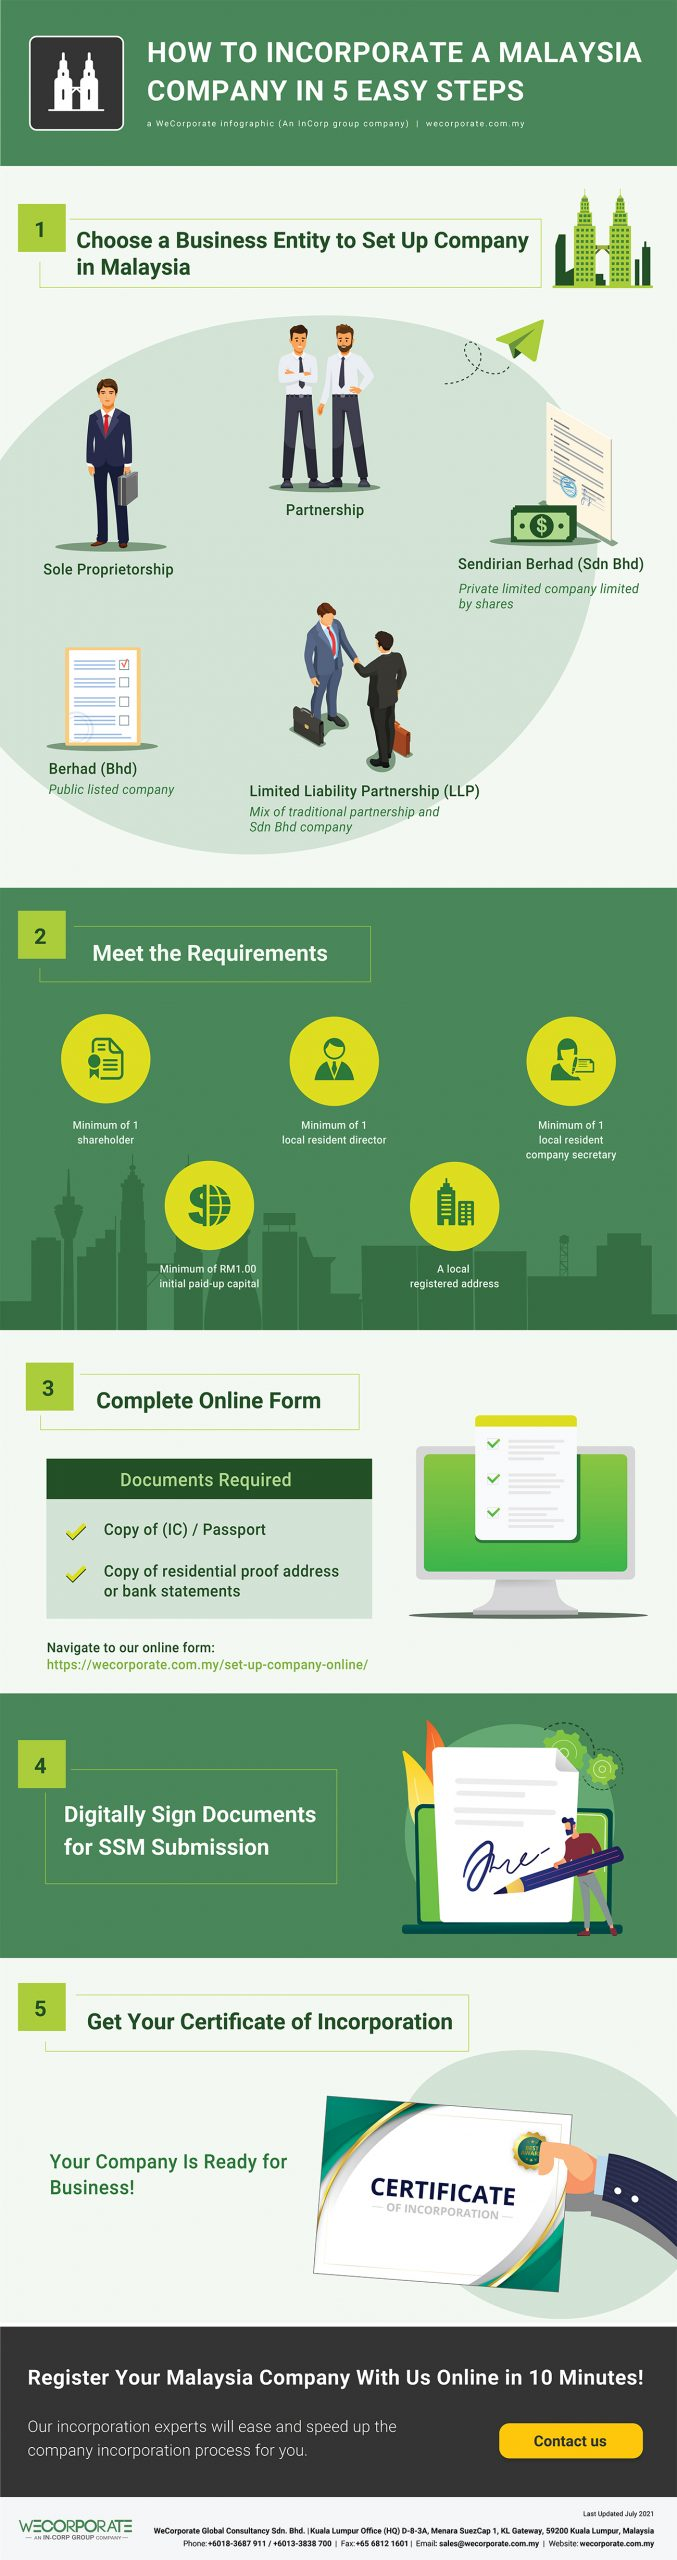 How to Incorporate a Malaysia Company in 5 Easy Steps